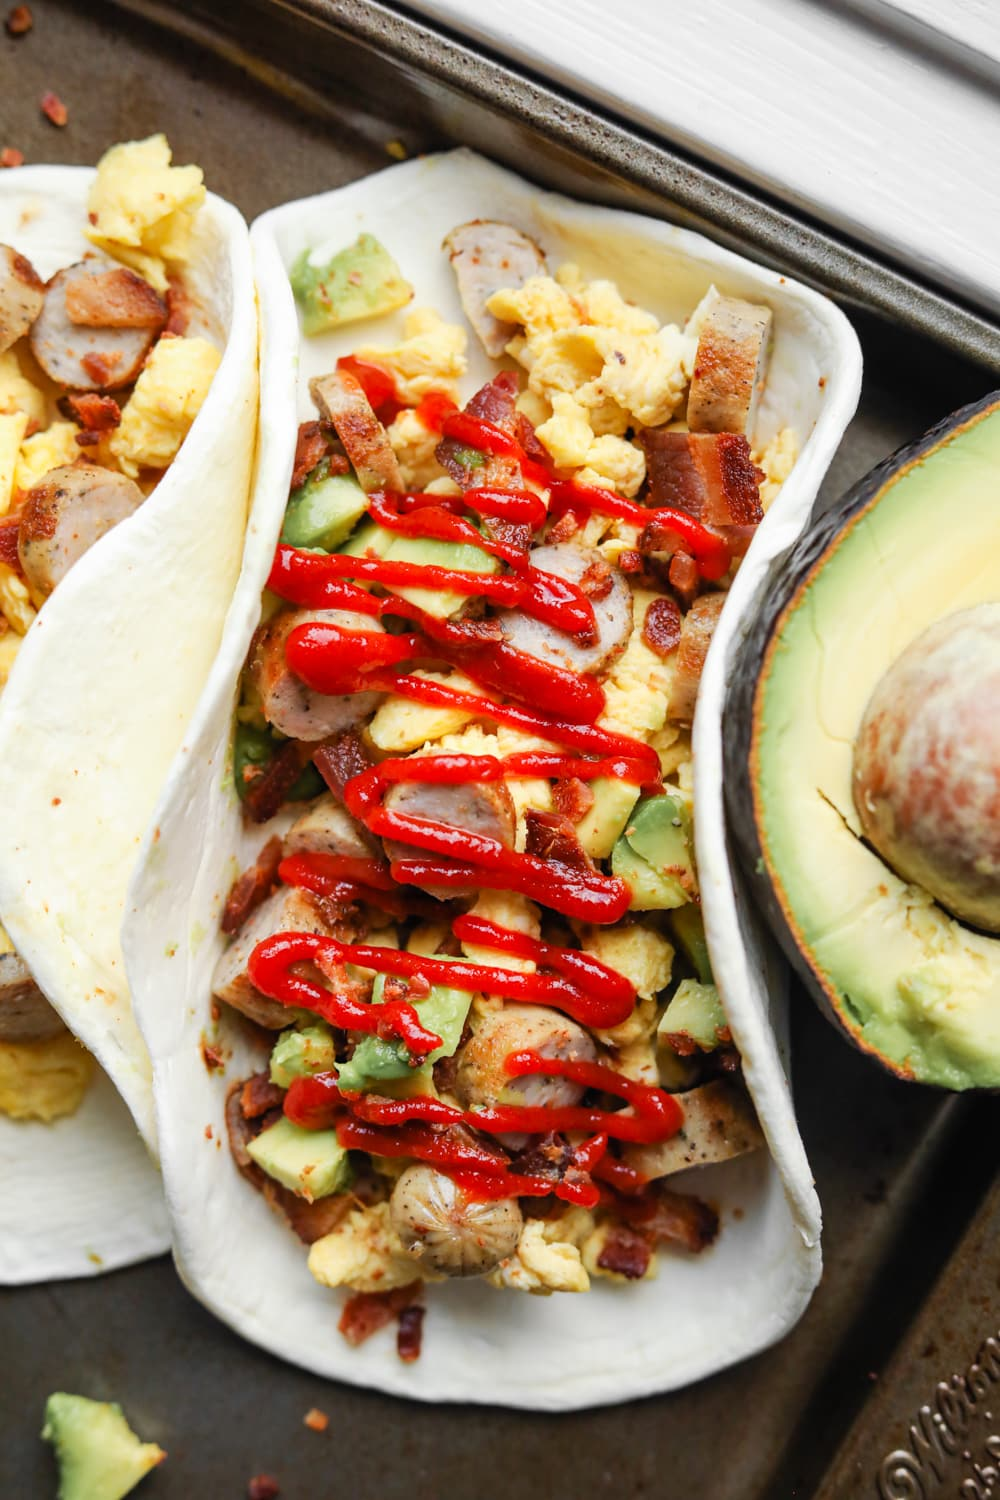 A white tortilla filled with eggs, sausage, bacon, and avocado, and topped with Sriracha.